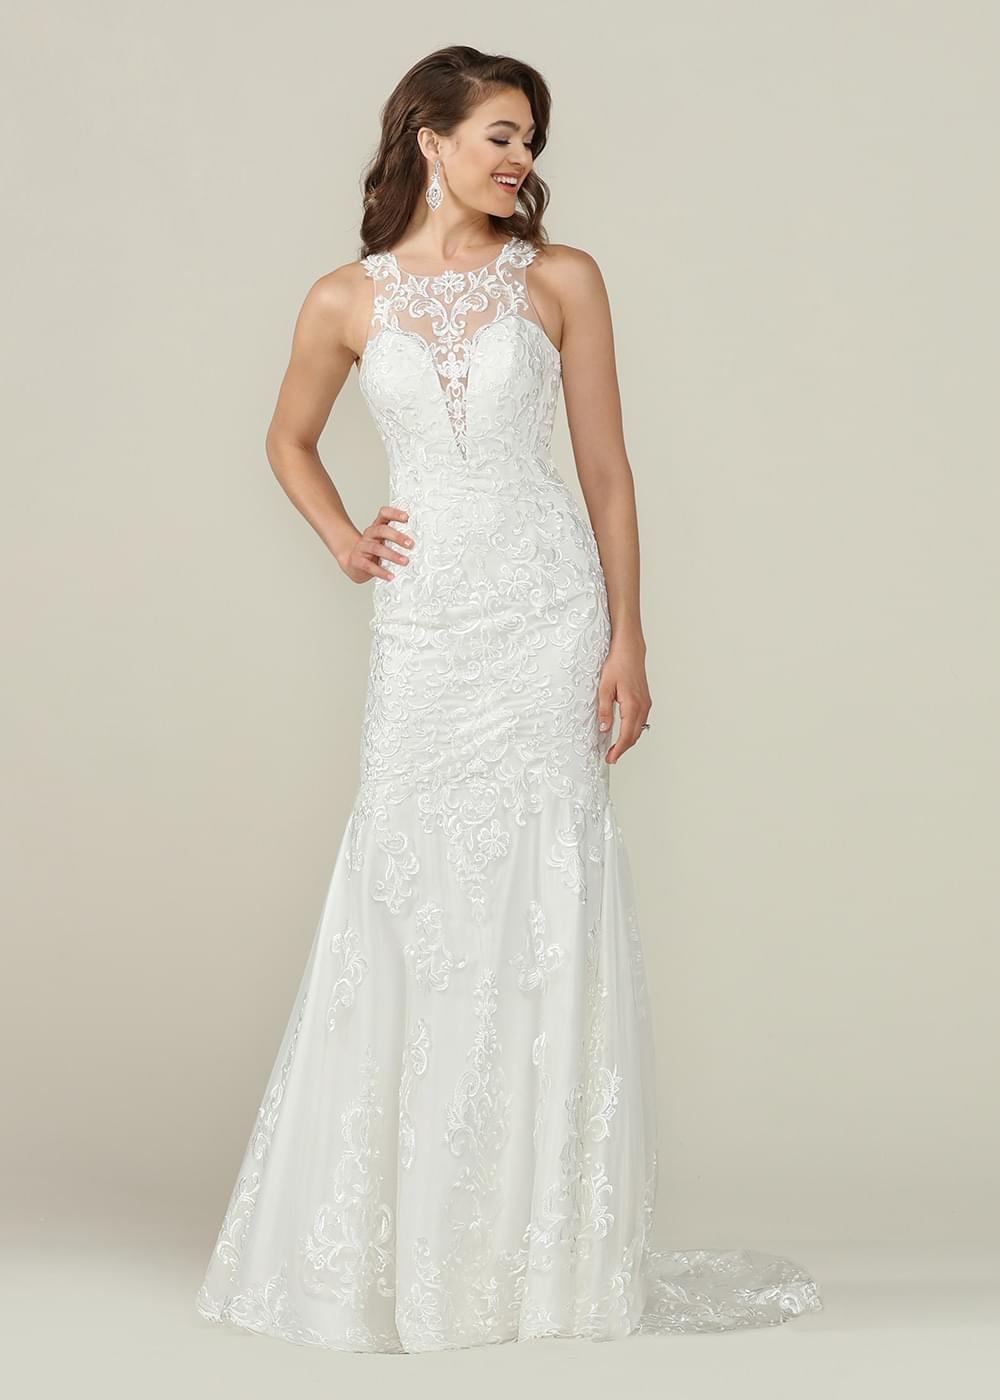 TH-Aliyah TH Wedding Dresses By Ashdon